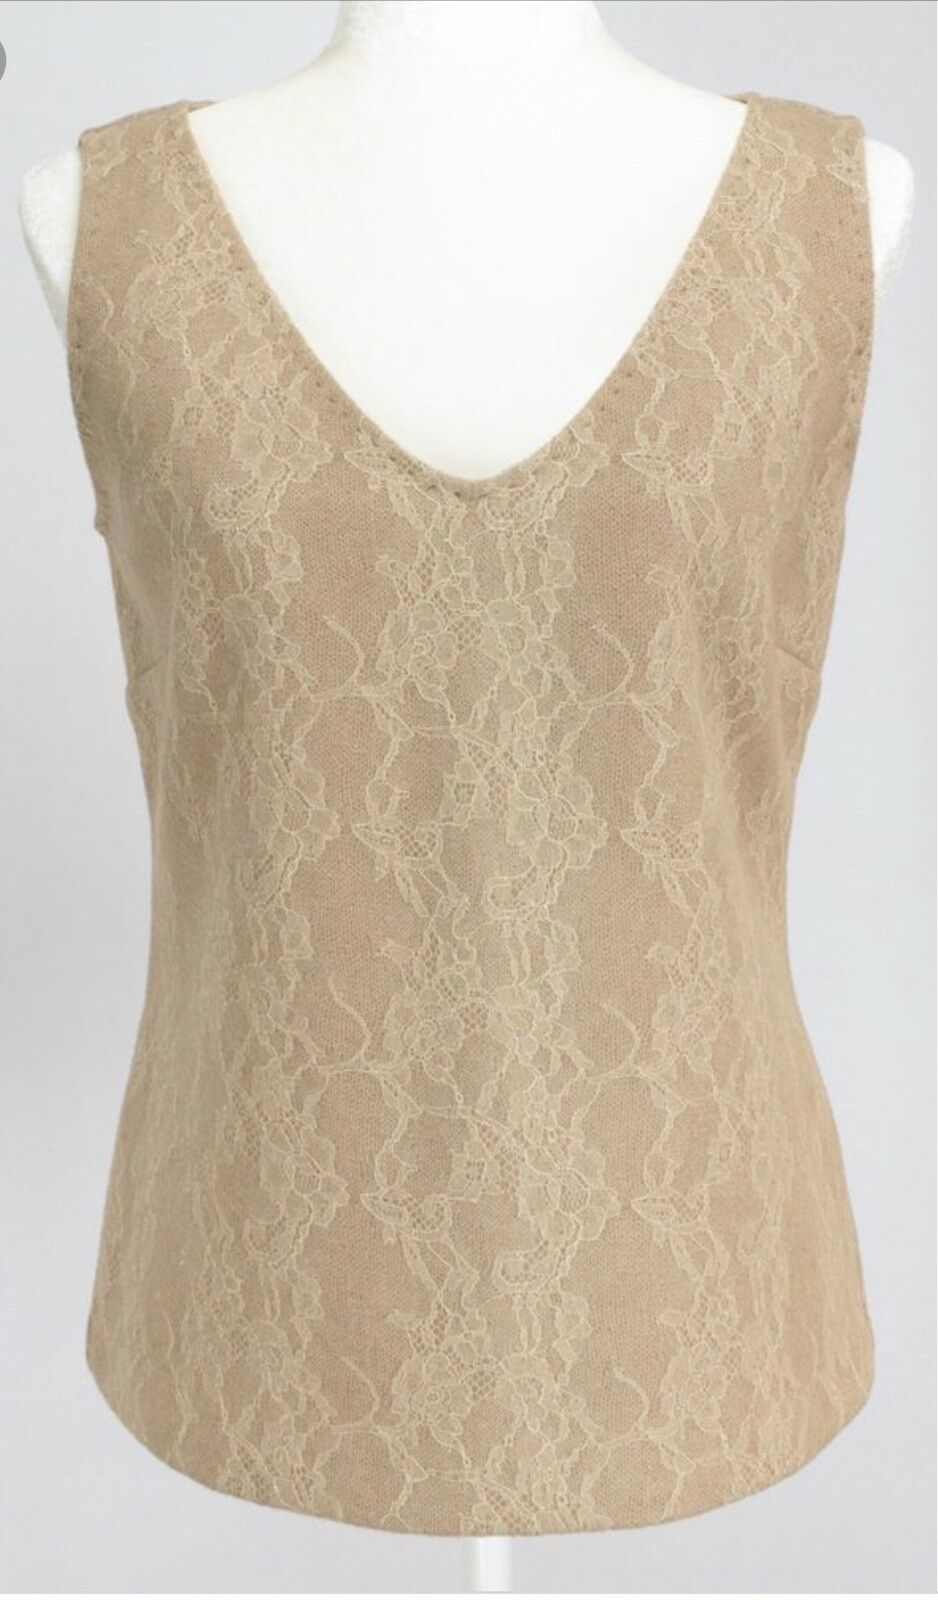 Max Mara Genzana Wool Lace Sleeveless Top Size S NWT